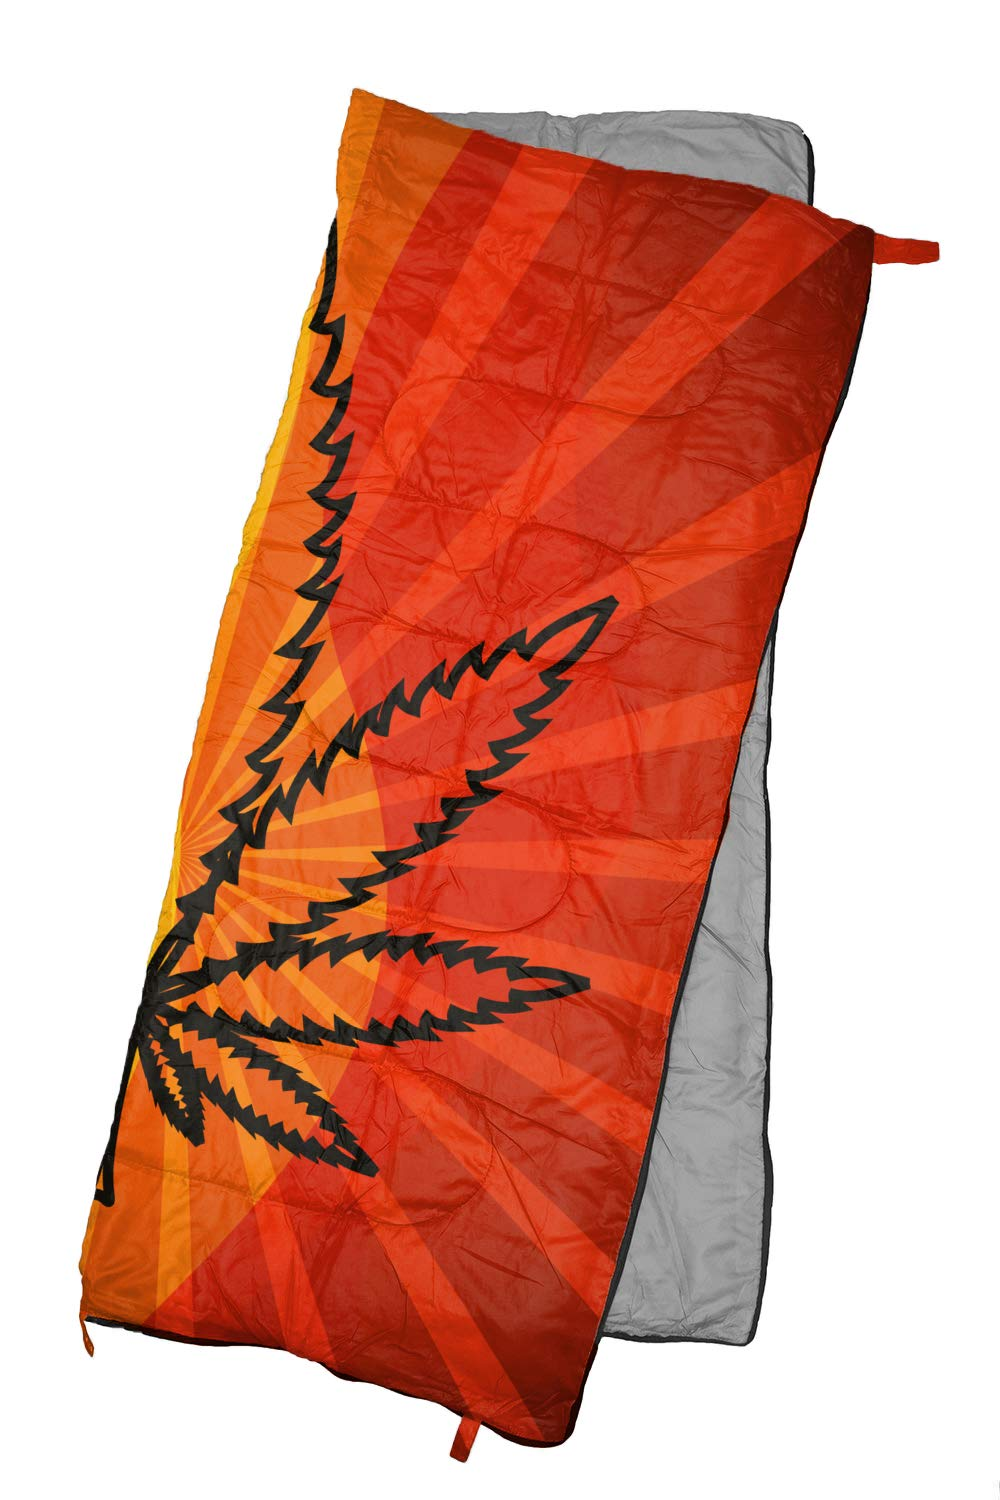 REVALCAMP Lightweight Sleeping Bag - Sunset Cannabis - Indoor & Outdoor use. Great for Kids, Teens & Adults. Ultra Light and Compact Bags are Perfect for Hiking, Backpacking, Camping & Travel.